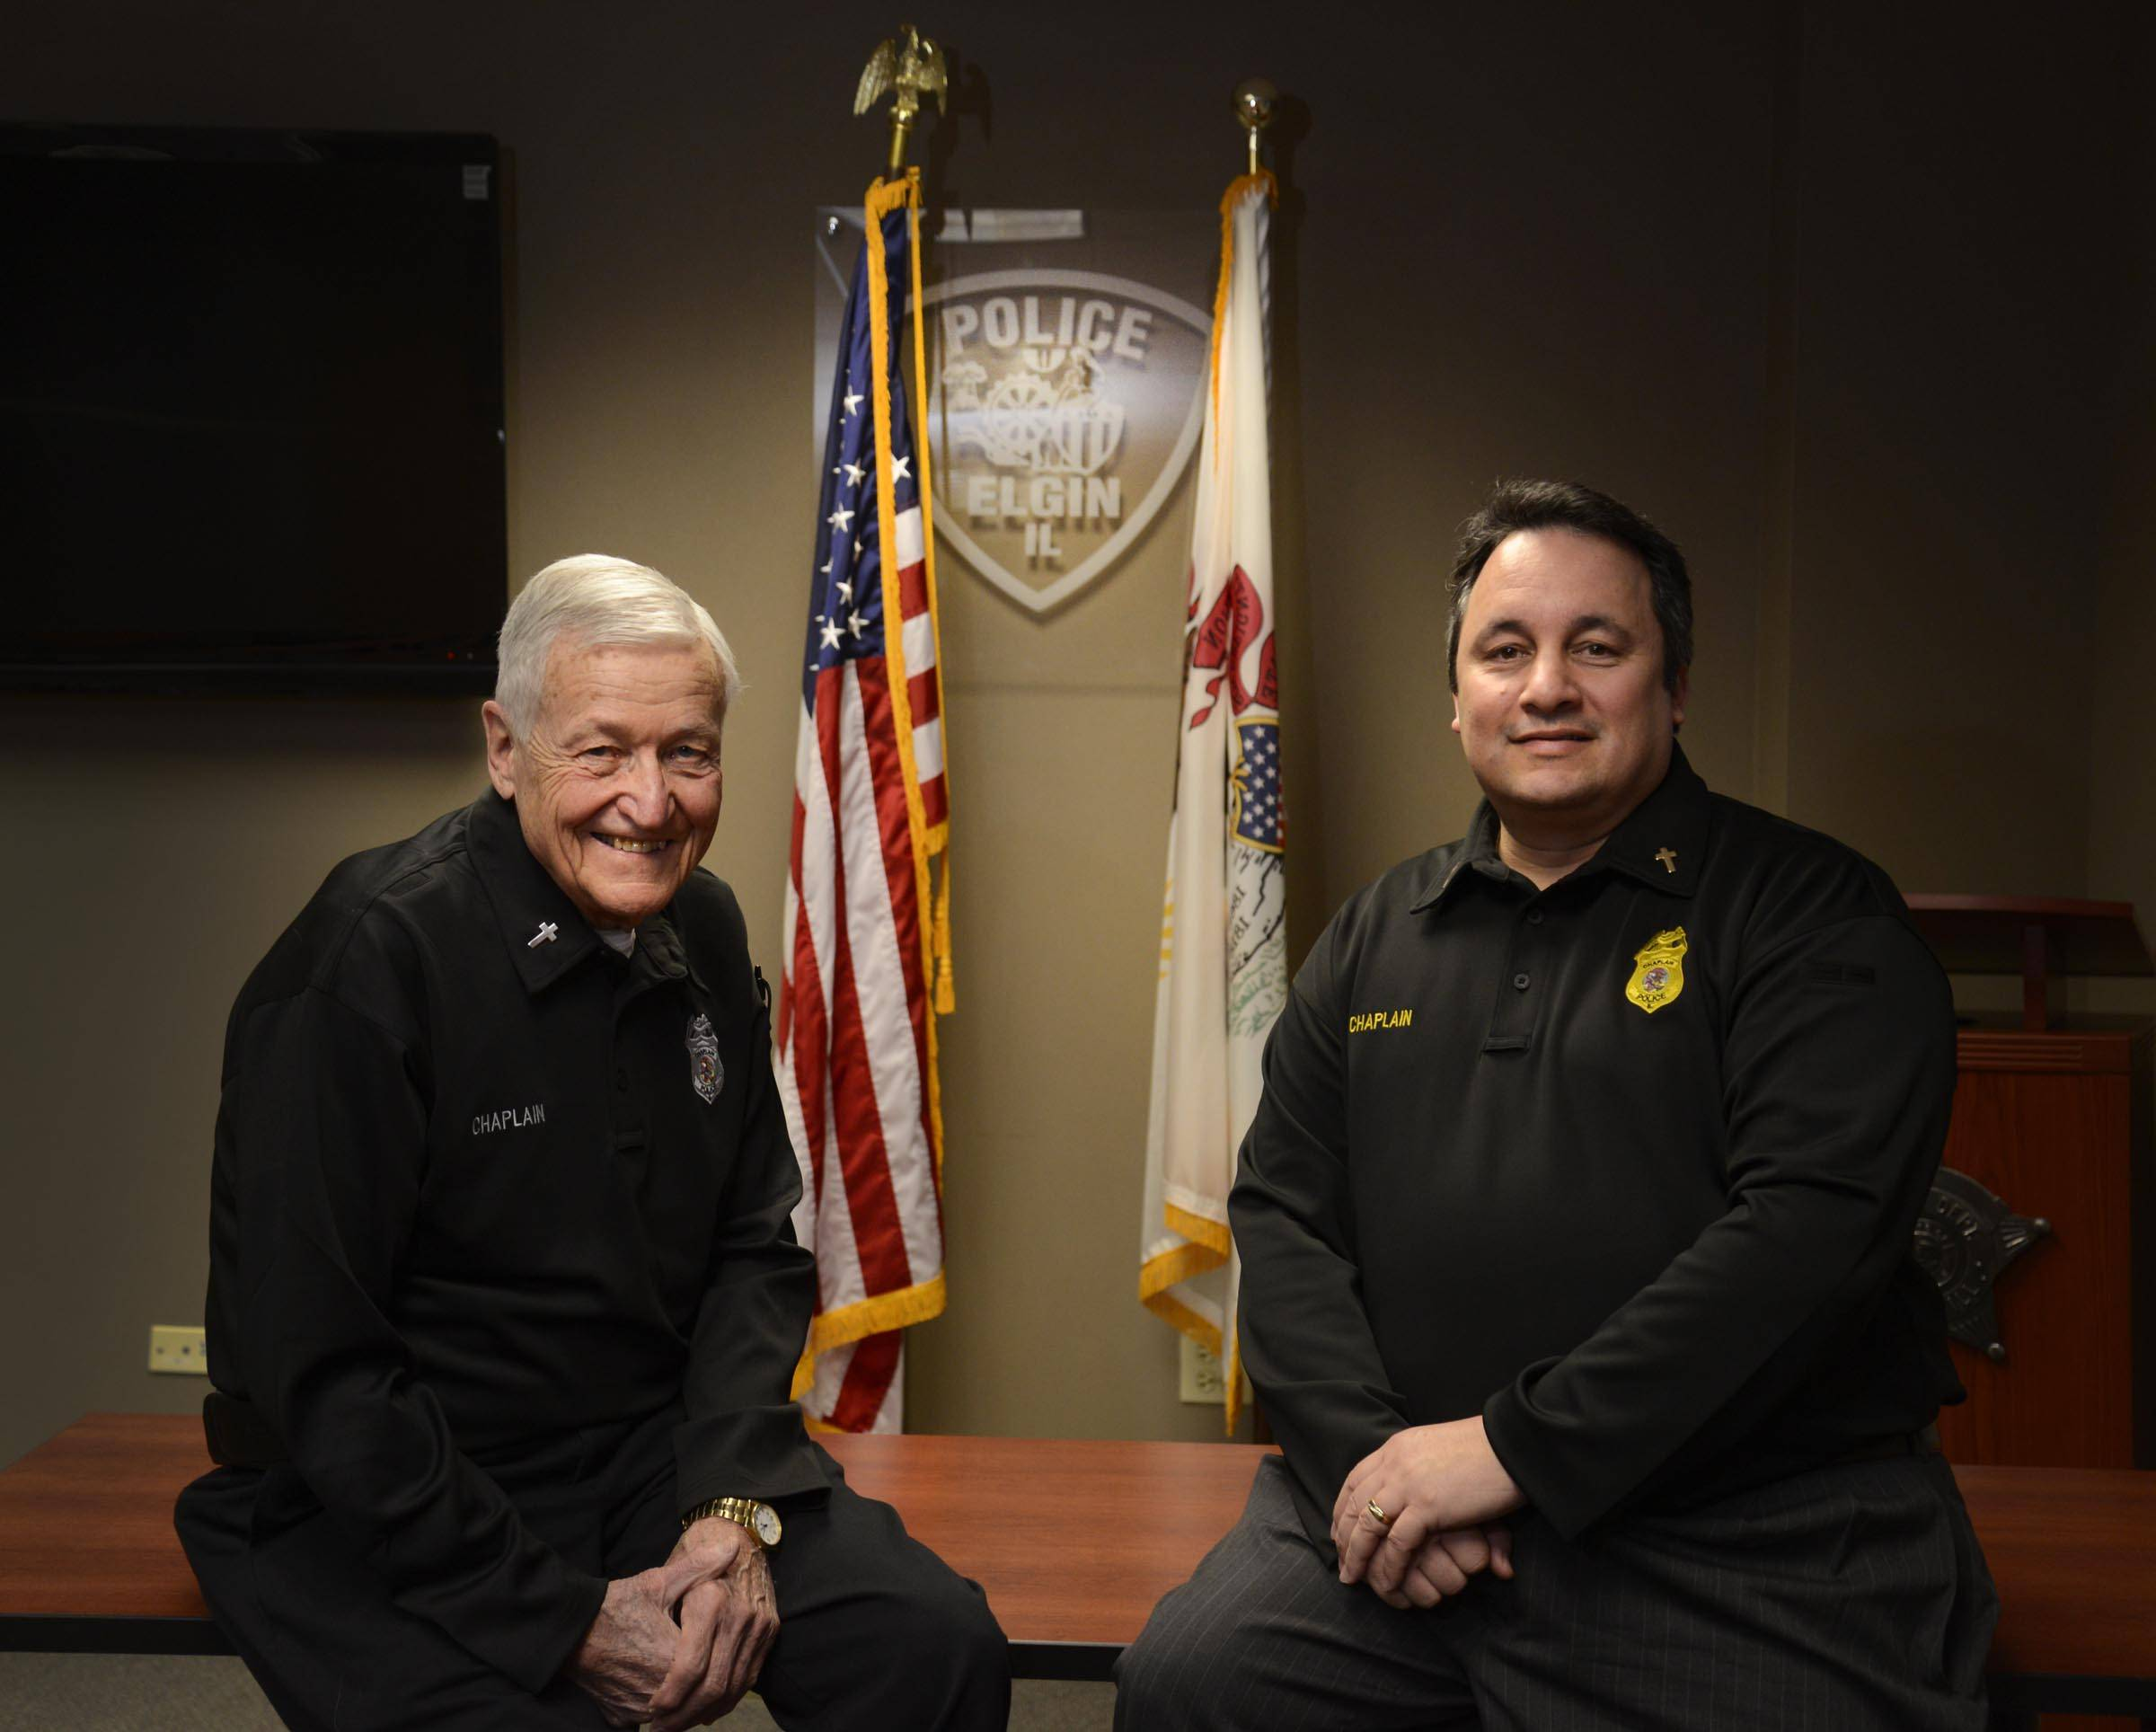 Carl Ball, left, and Tim Perry are chaplains with the Elgin Police Department. Ball has 47 years of experience working on law enforcement, and Perry is working on expanding the scope of the Northwest Corridor Chaplaincy Service to help place chaplains at police and fire departments across the suburbs.